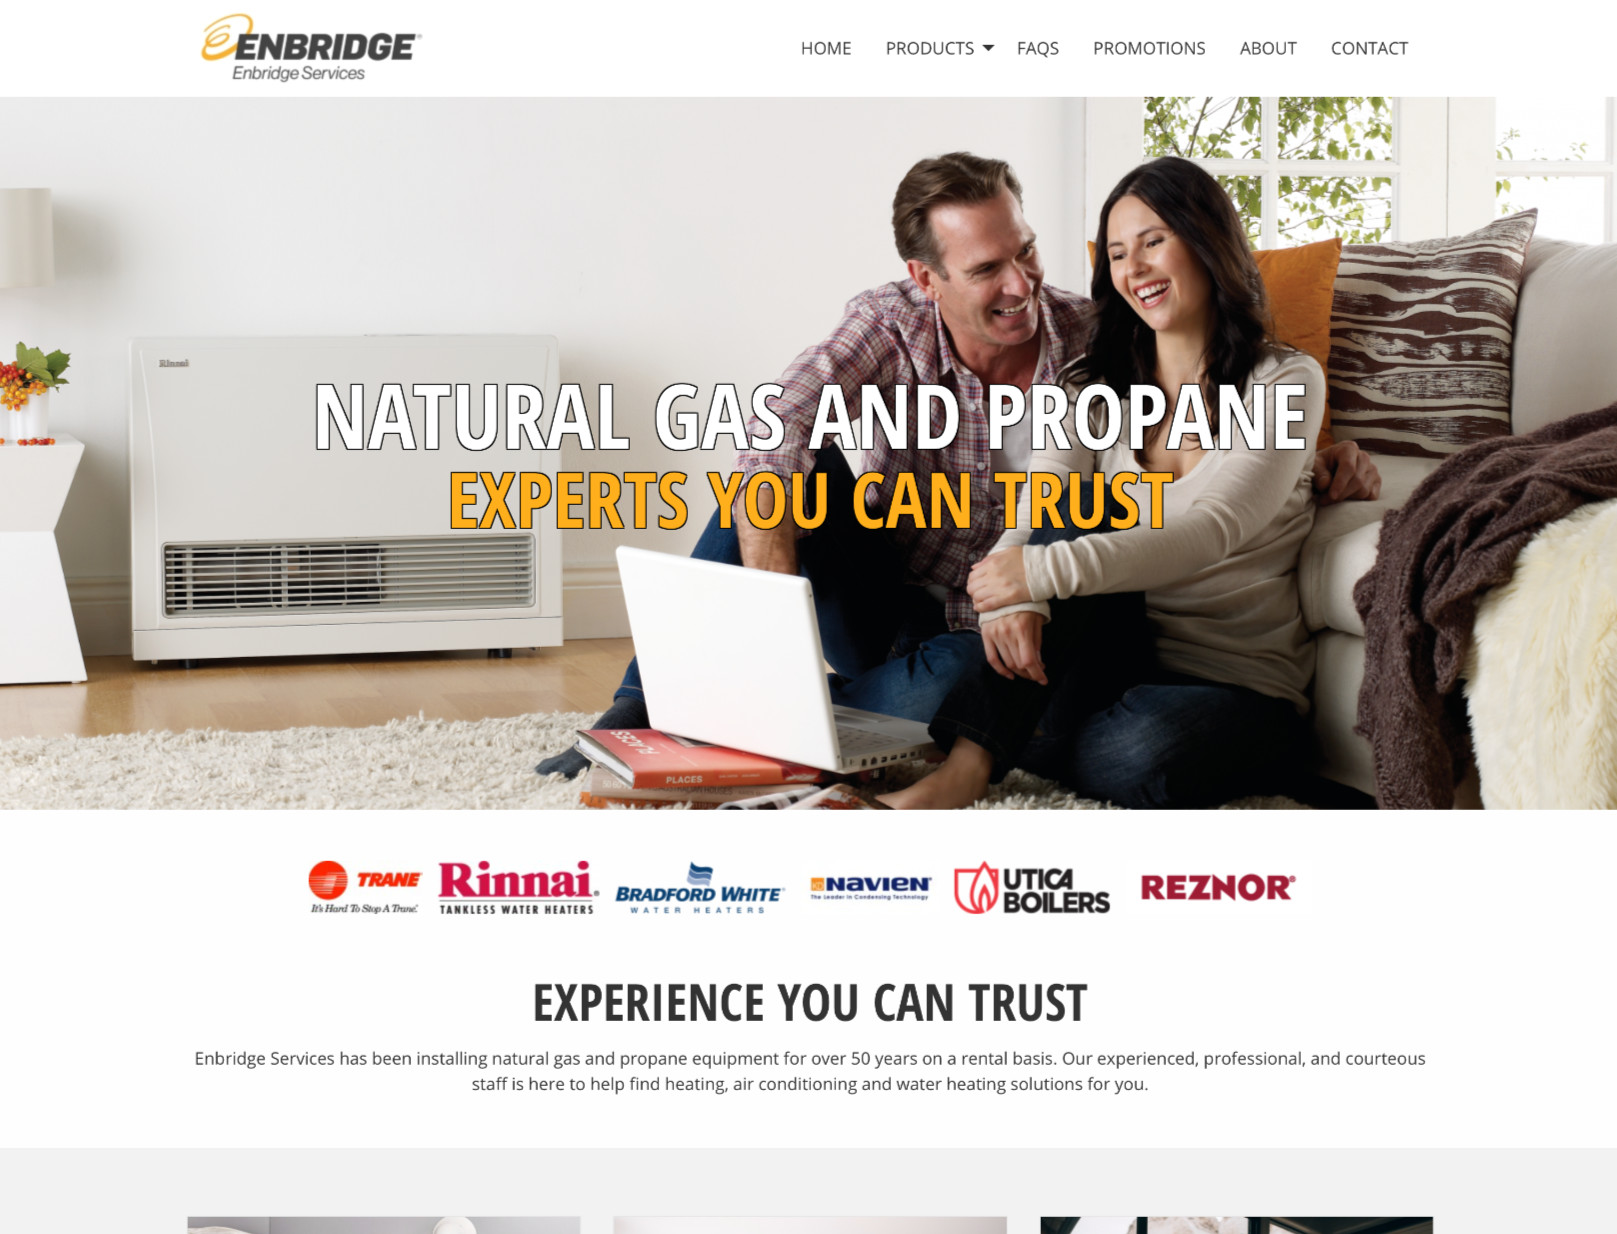 Enbridge Services